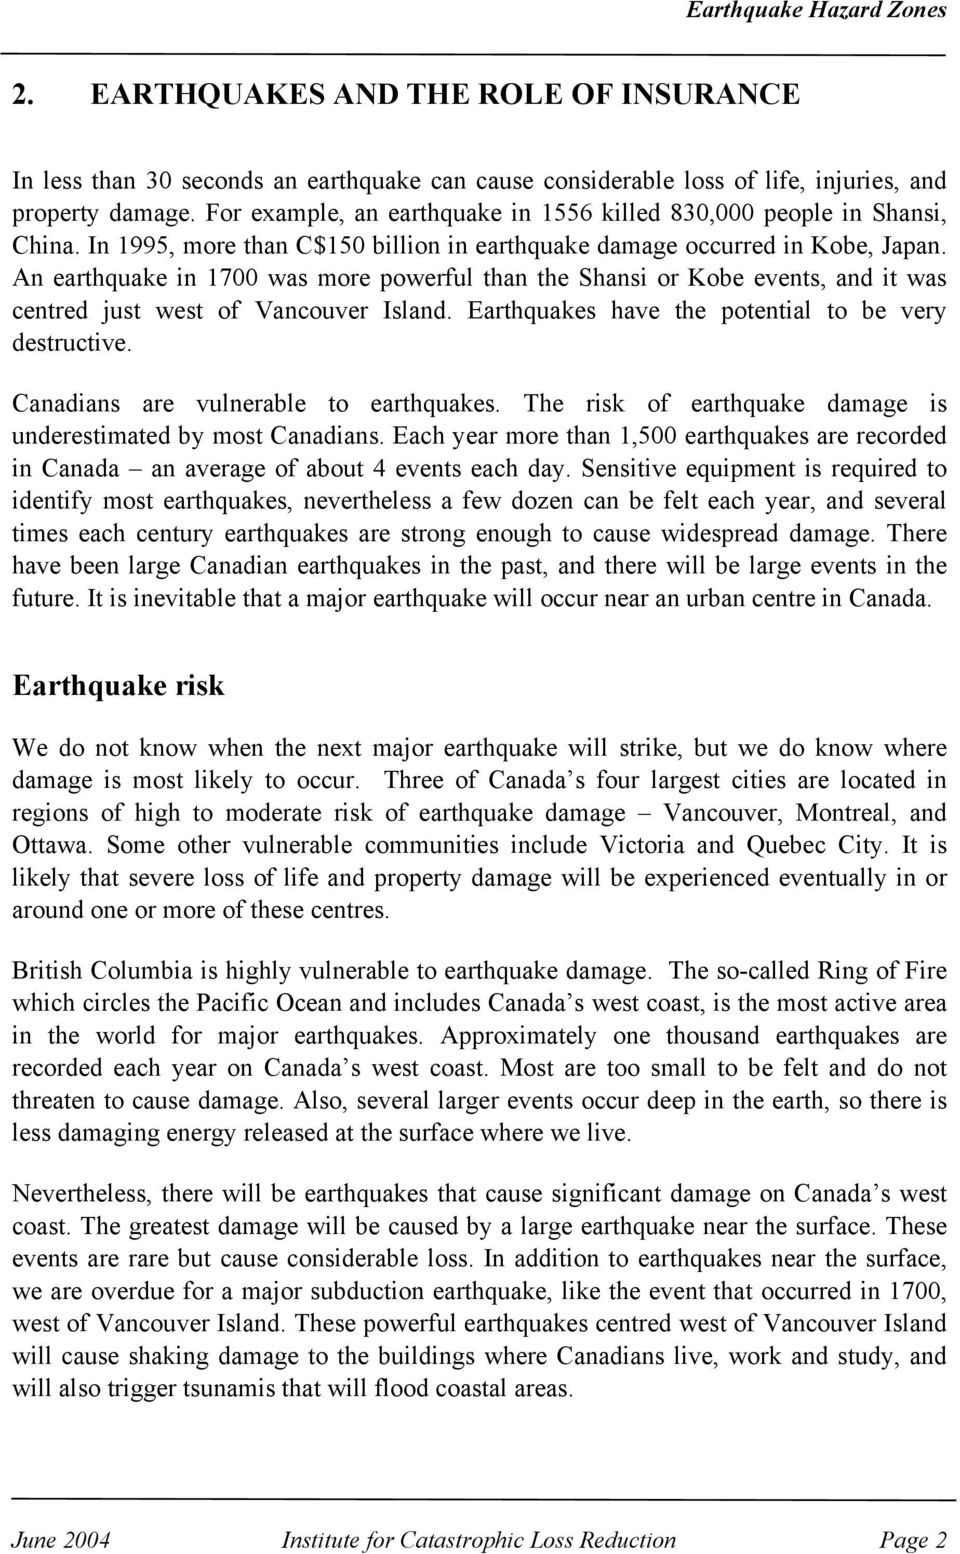 An earthquake in 1700 was more powerful than the Shansi or Kobe events, and it was centred just west of Vancouver Island. Earthquakes have the potential to be very destructive.